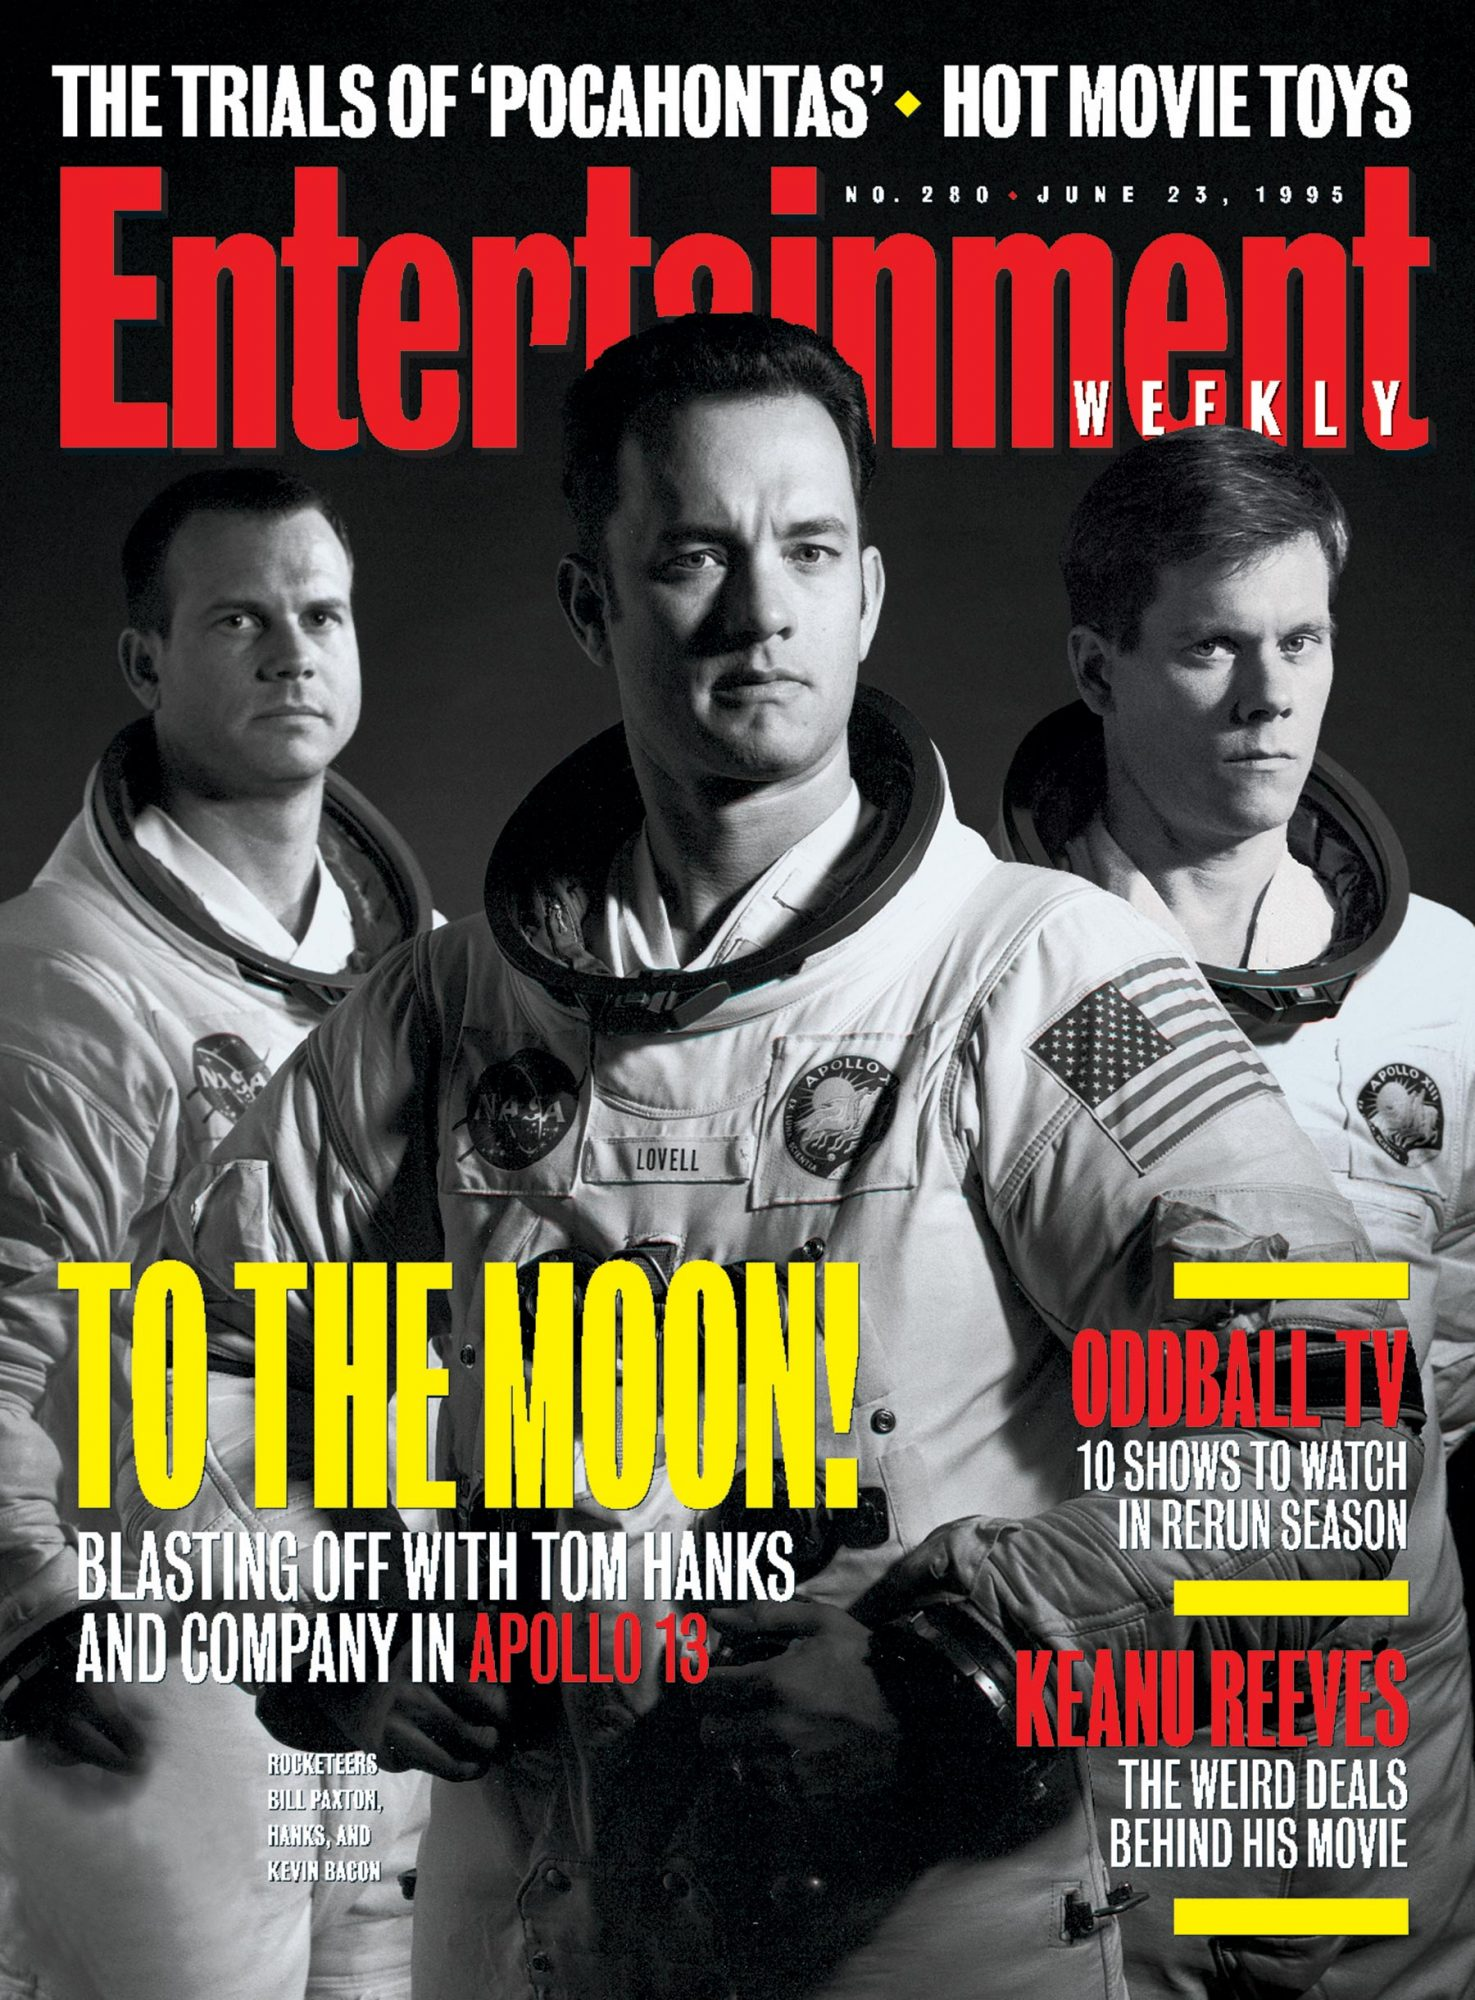 Entertainment WeeklyApollo 13June 23, 1995#280